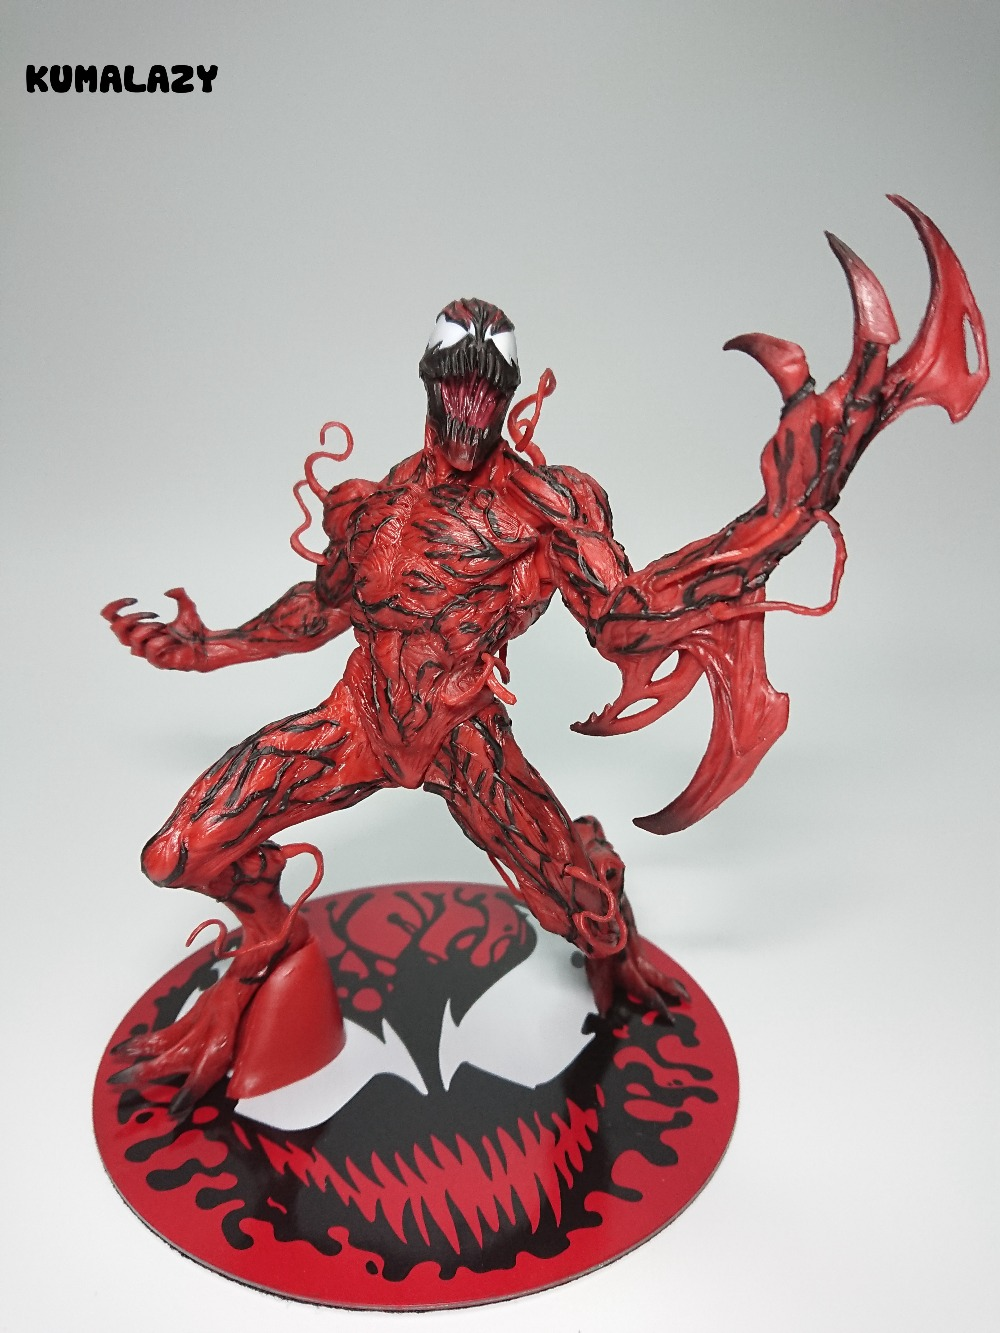 Spider Man Carnage Figure ARTFX+ X MEN X-MEN Cletus Kasady Iron Man Wolverine PVC Action Figure Model Collection Toy Gift the amazing spider man venom cletus kasady carnage pvc action figure toy spiderman villain venom collectible model toy gift n038